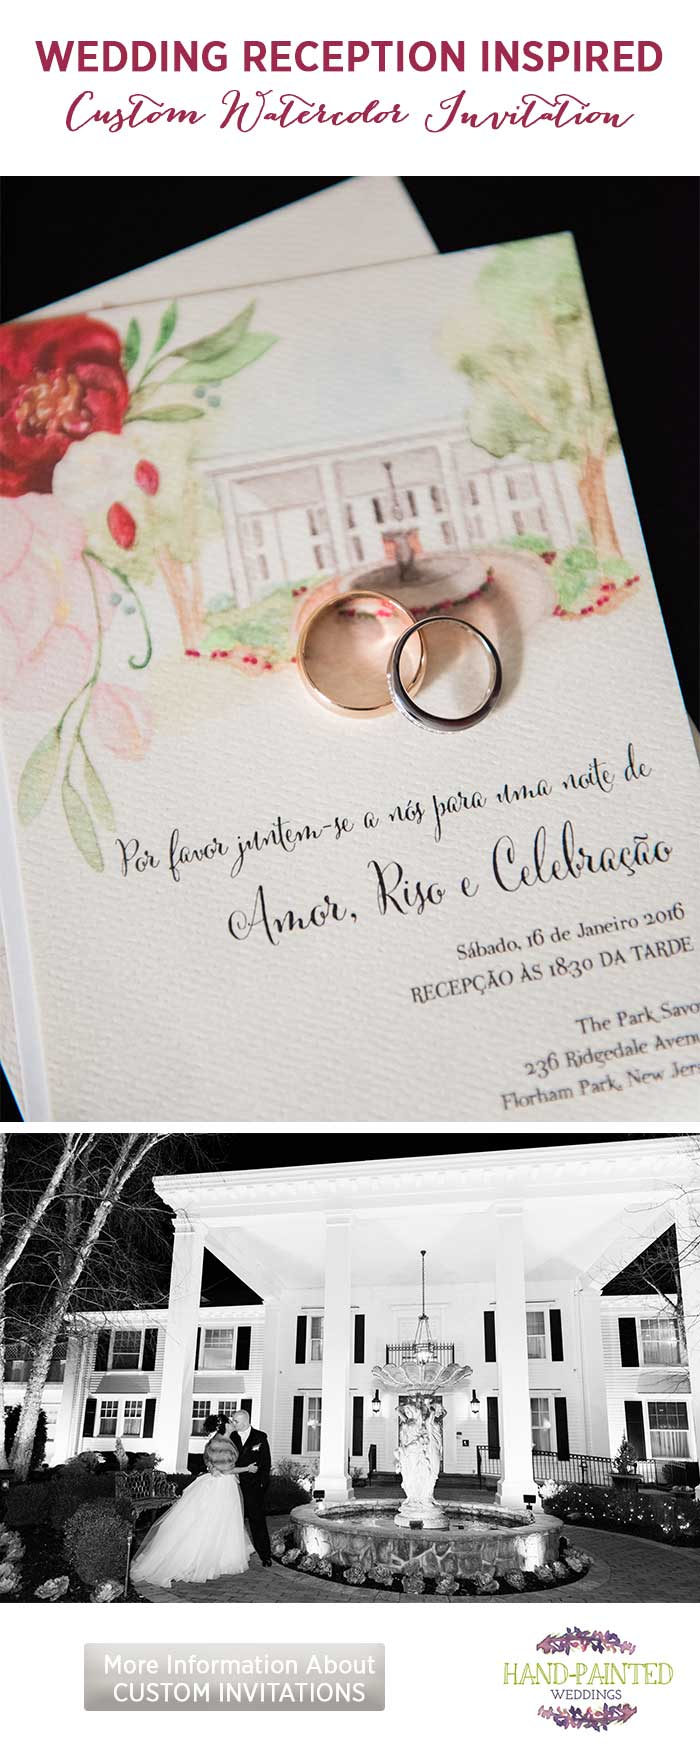 Wedding Reception Custom Watercolor Invitation by Hand-Painted Weddings